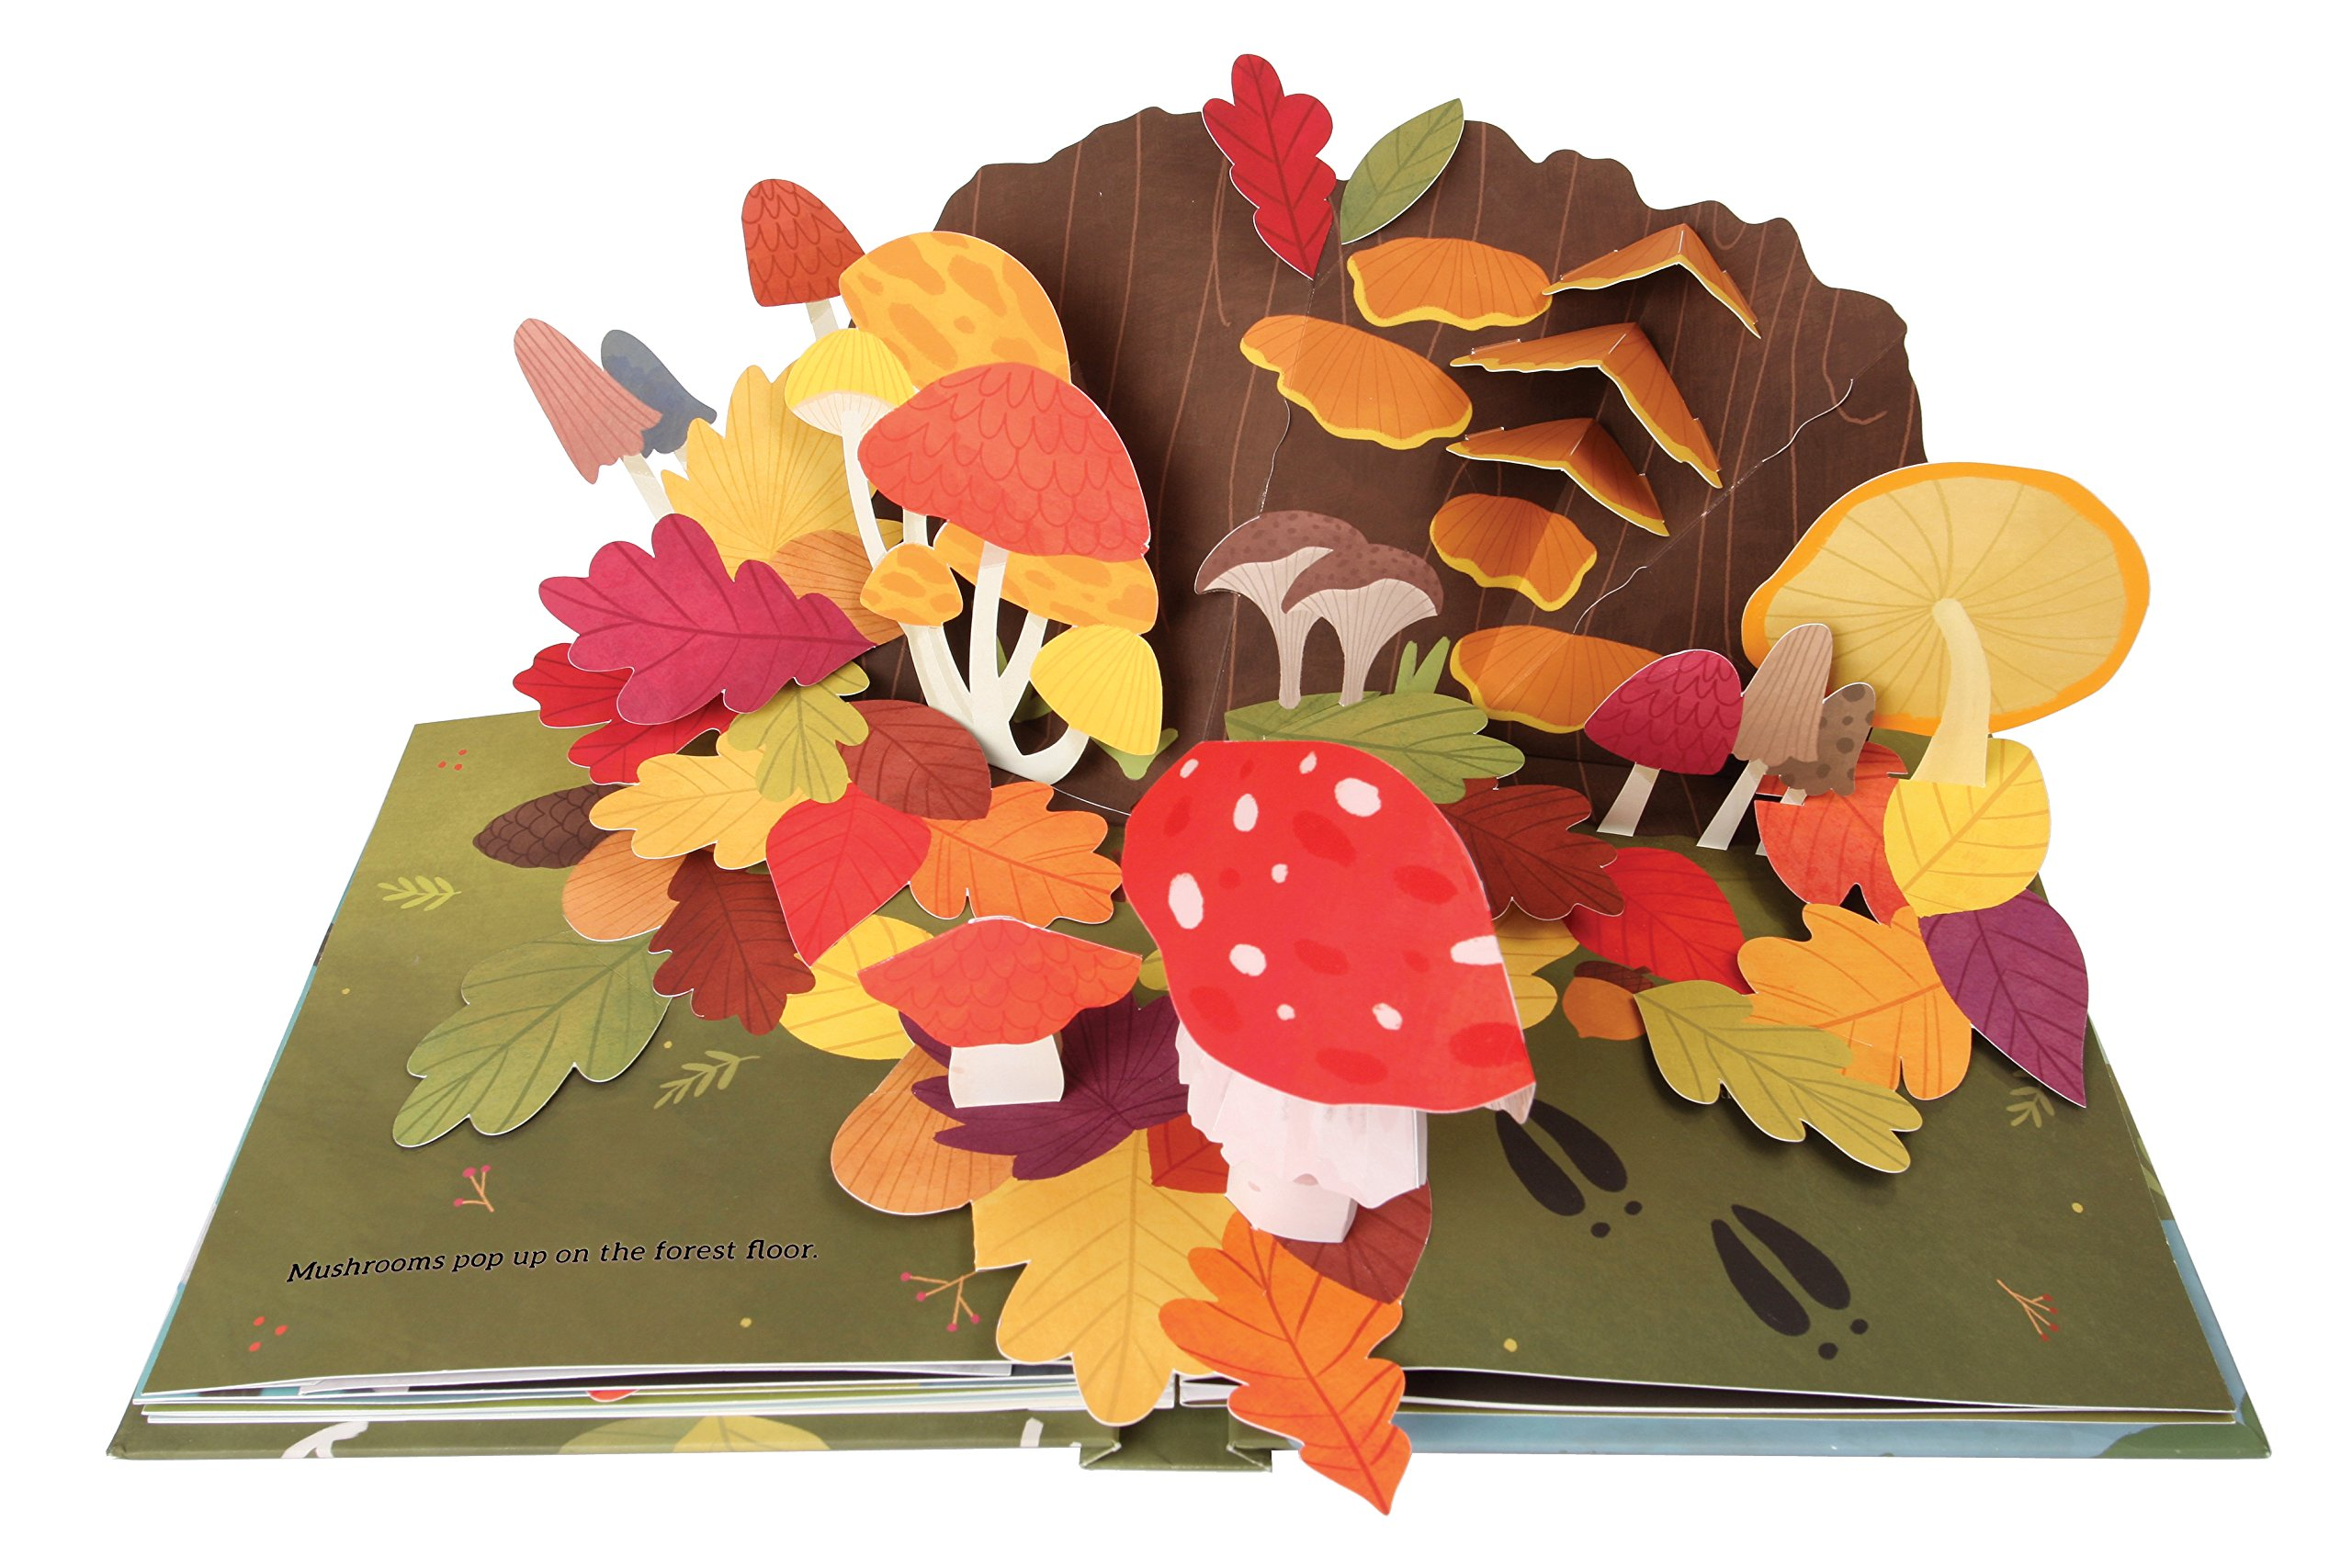 leaves tresors caches foret papier paper 3D card popup